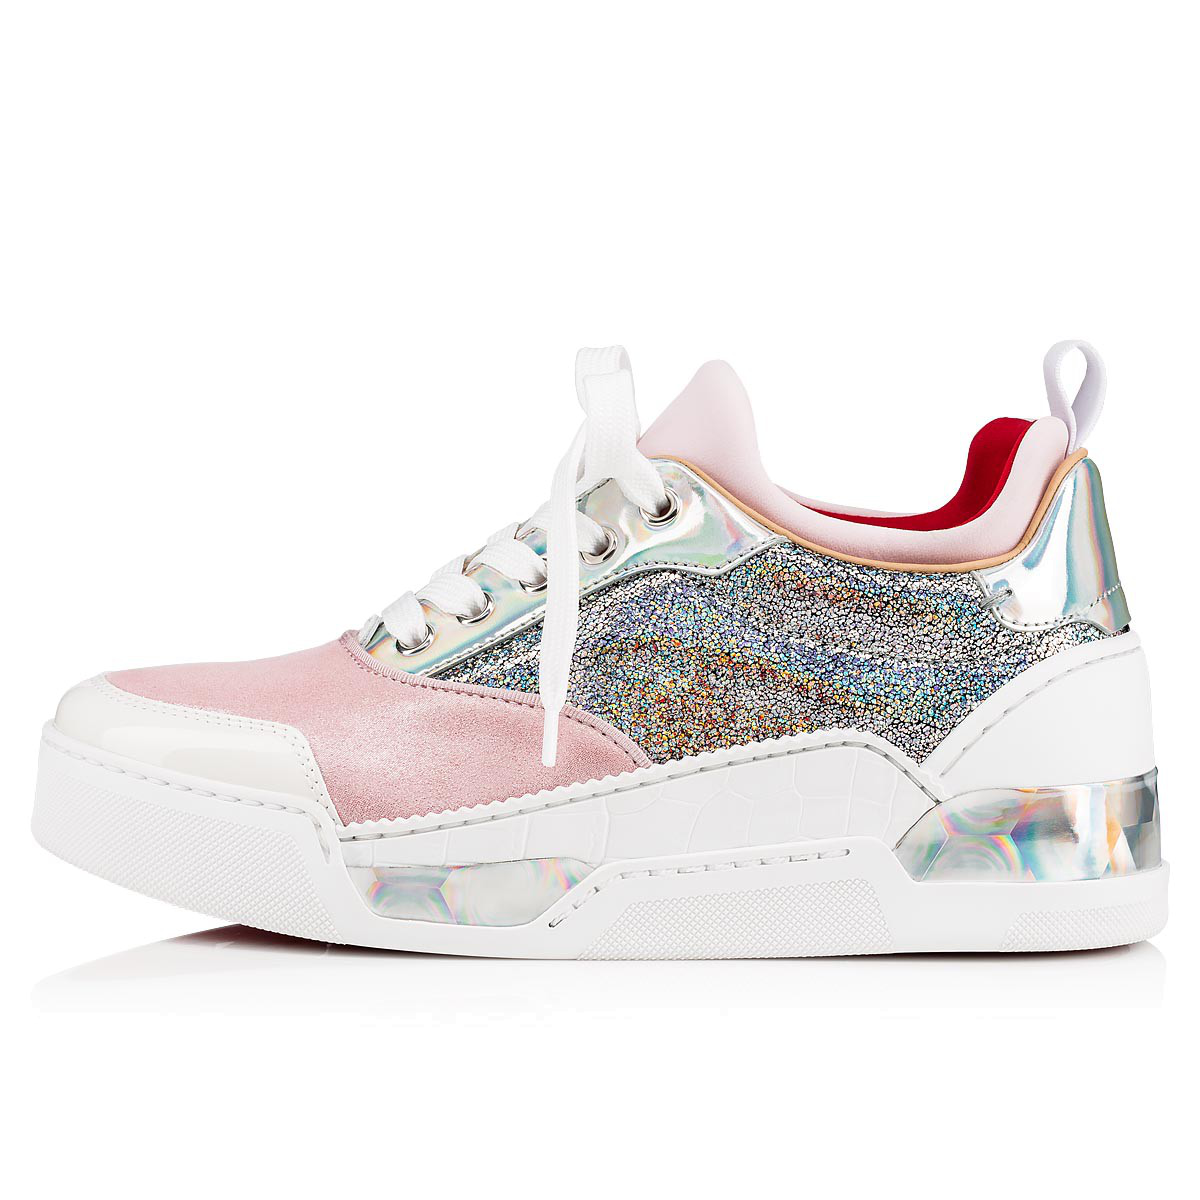 9ac8bc5a4c89a Christian Louboutin Aurelien Women s Multimedia Low-Top Sneakers In Pink  Silver